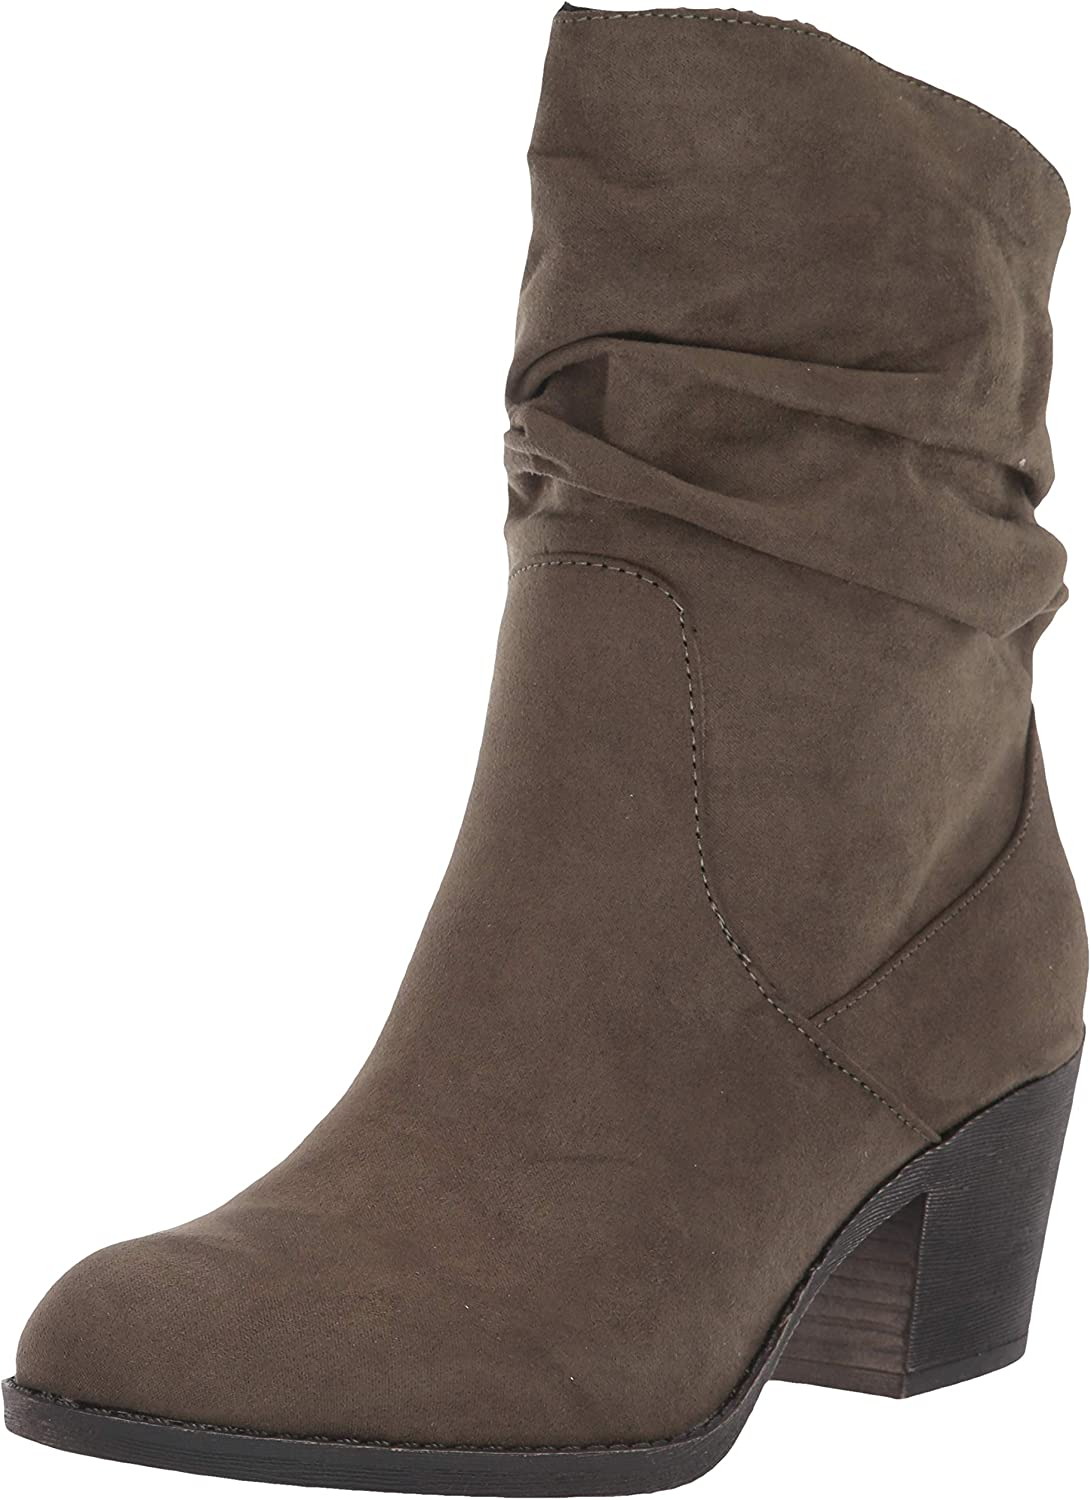 | Rocket Dog Women's Sassily Fashion Boot | Ankle & Bootie